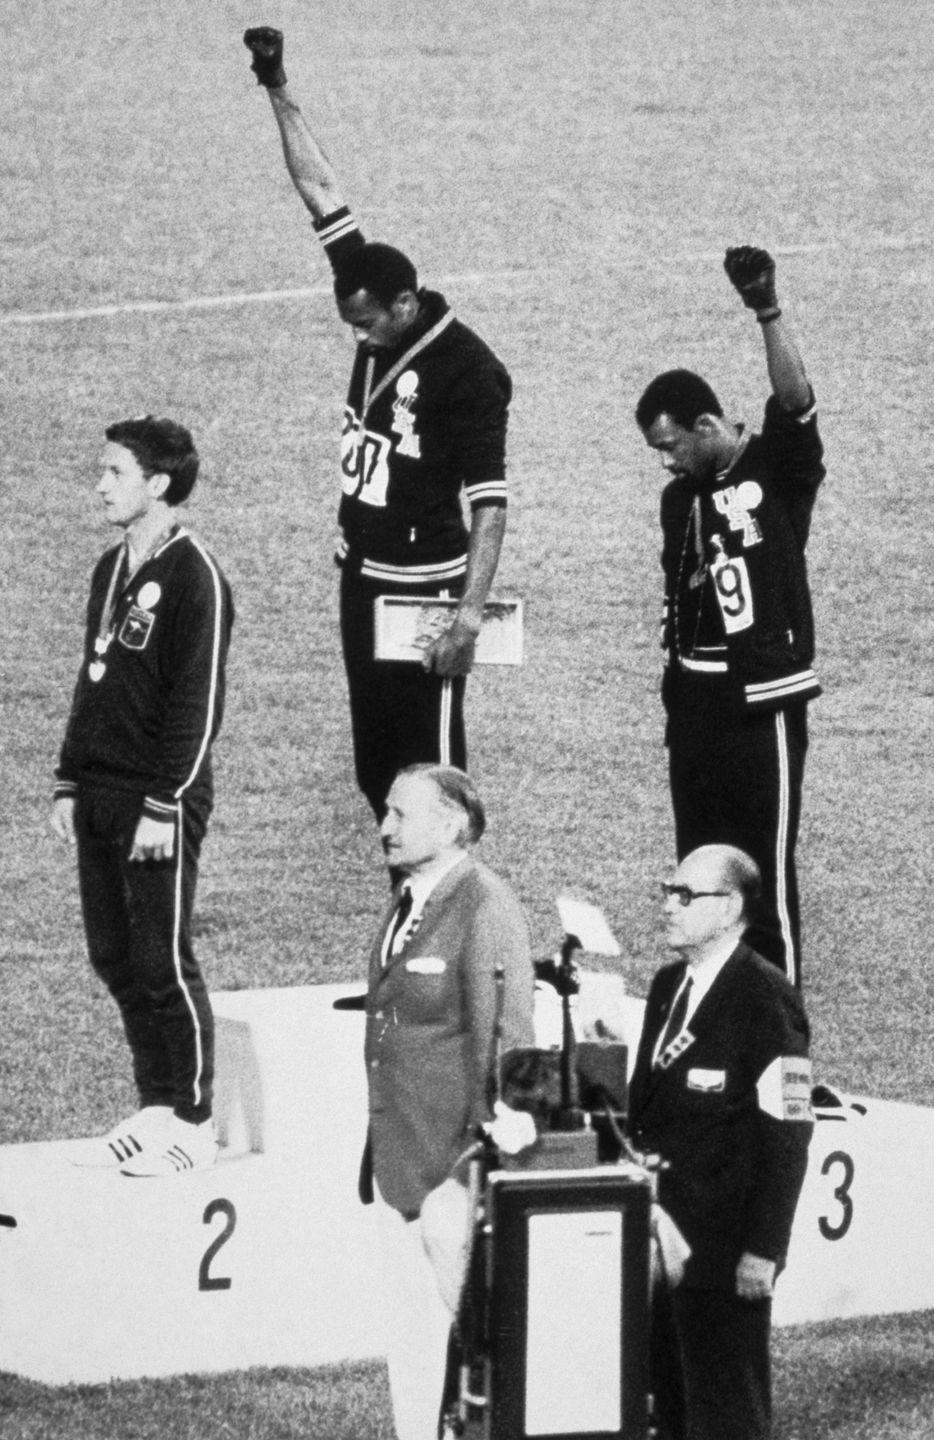 <p>To protest racism in the States, sprinters Tommie Smith and John Carlos put on scarves and beads—to represent lynching—and took off their shoes—a symbol of poverty—before taking the podium. During the national anthem, they bowed their heads and raised their fists in the Black Power salute. Their protest is one of the most iconic sports moments of all time. </p>